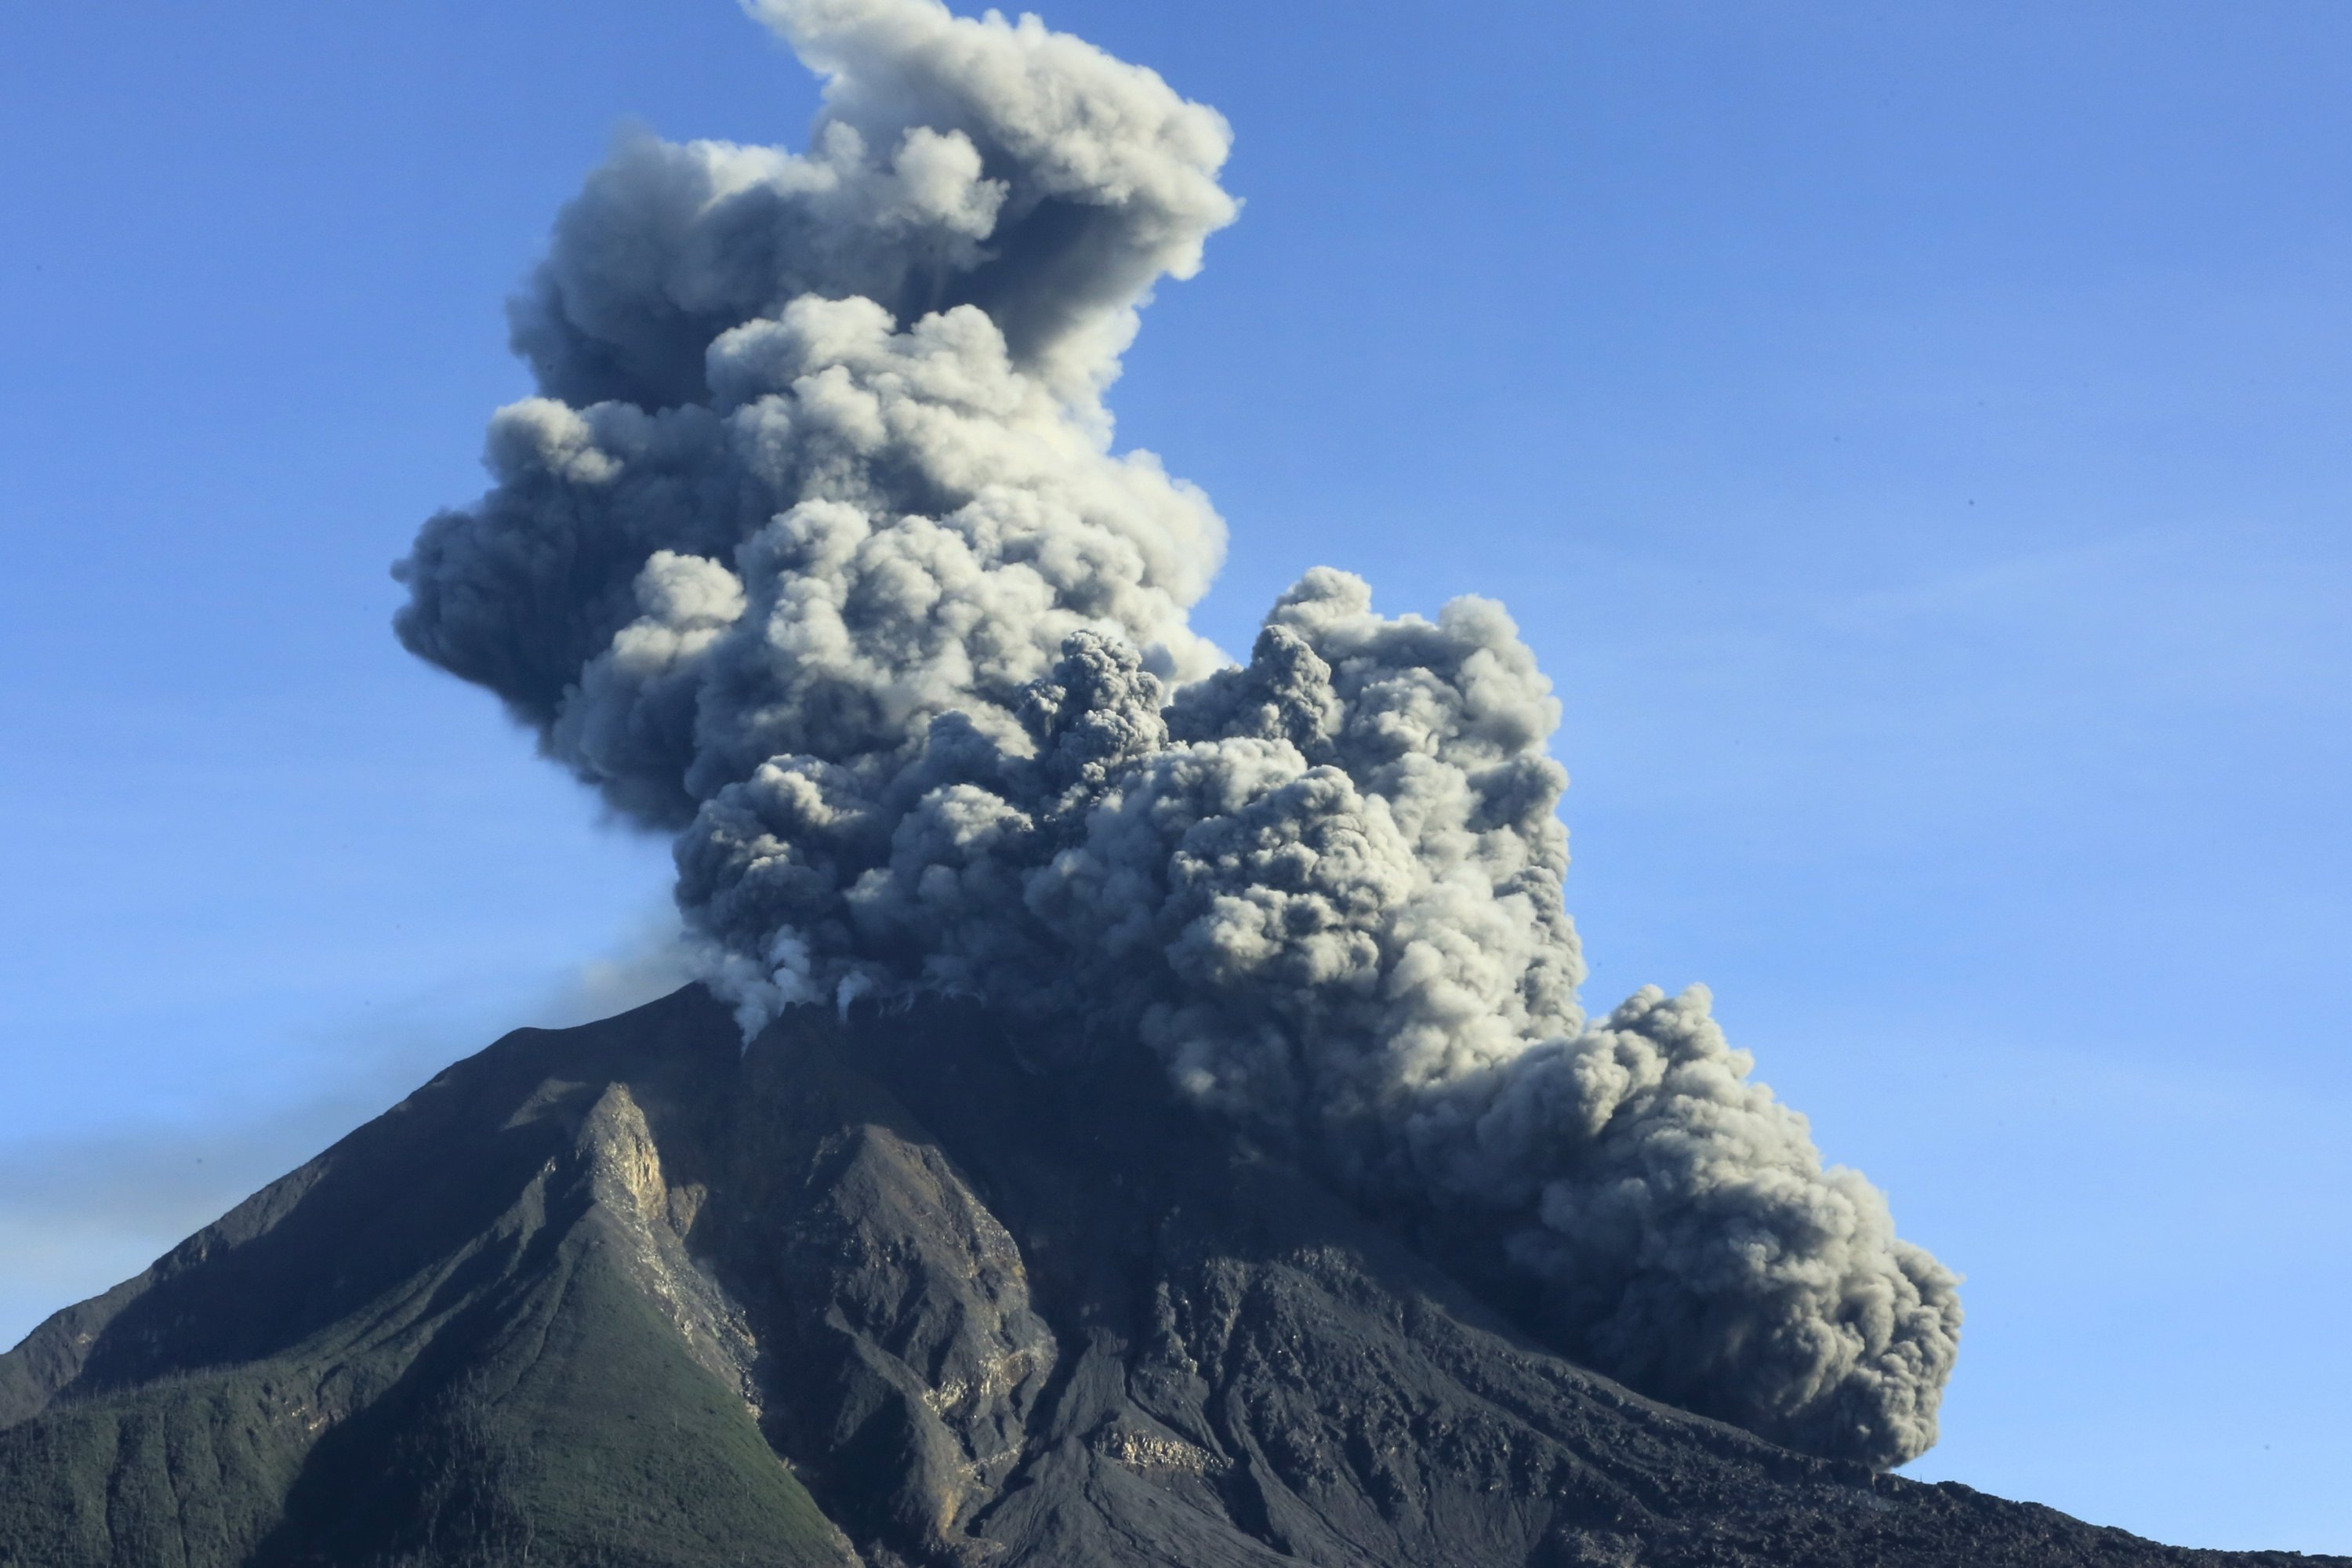 Mount Sinabung spews volcanic ash into the air during an eruption as seen from Karo, North Sumatra, Indonesia, Aug. 23, 2020. (EPA Photo)